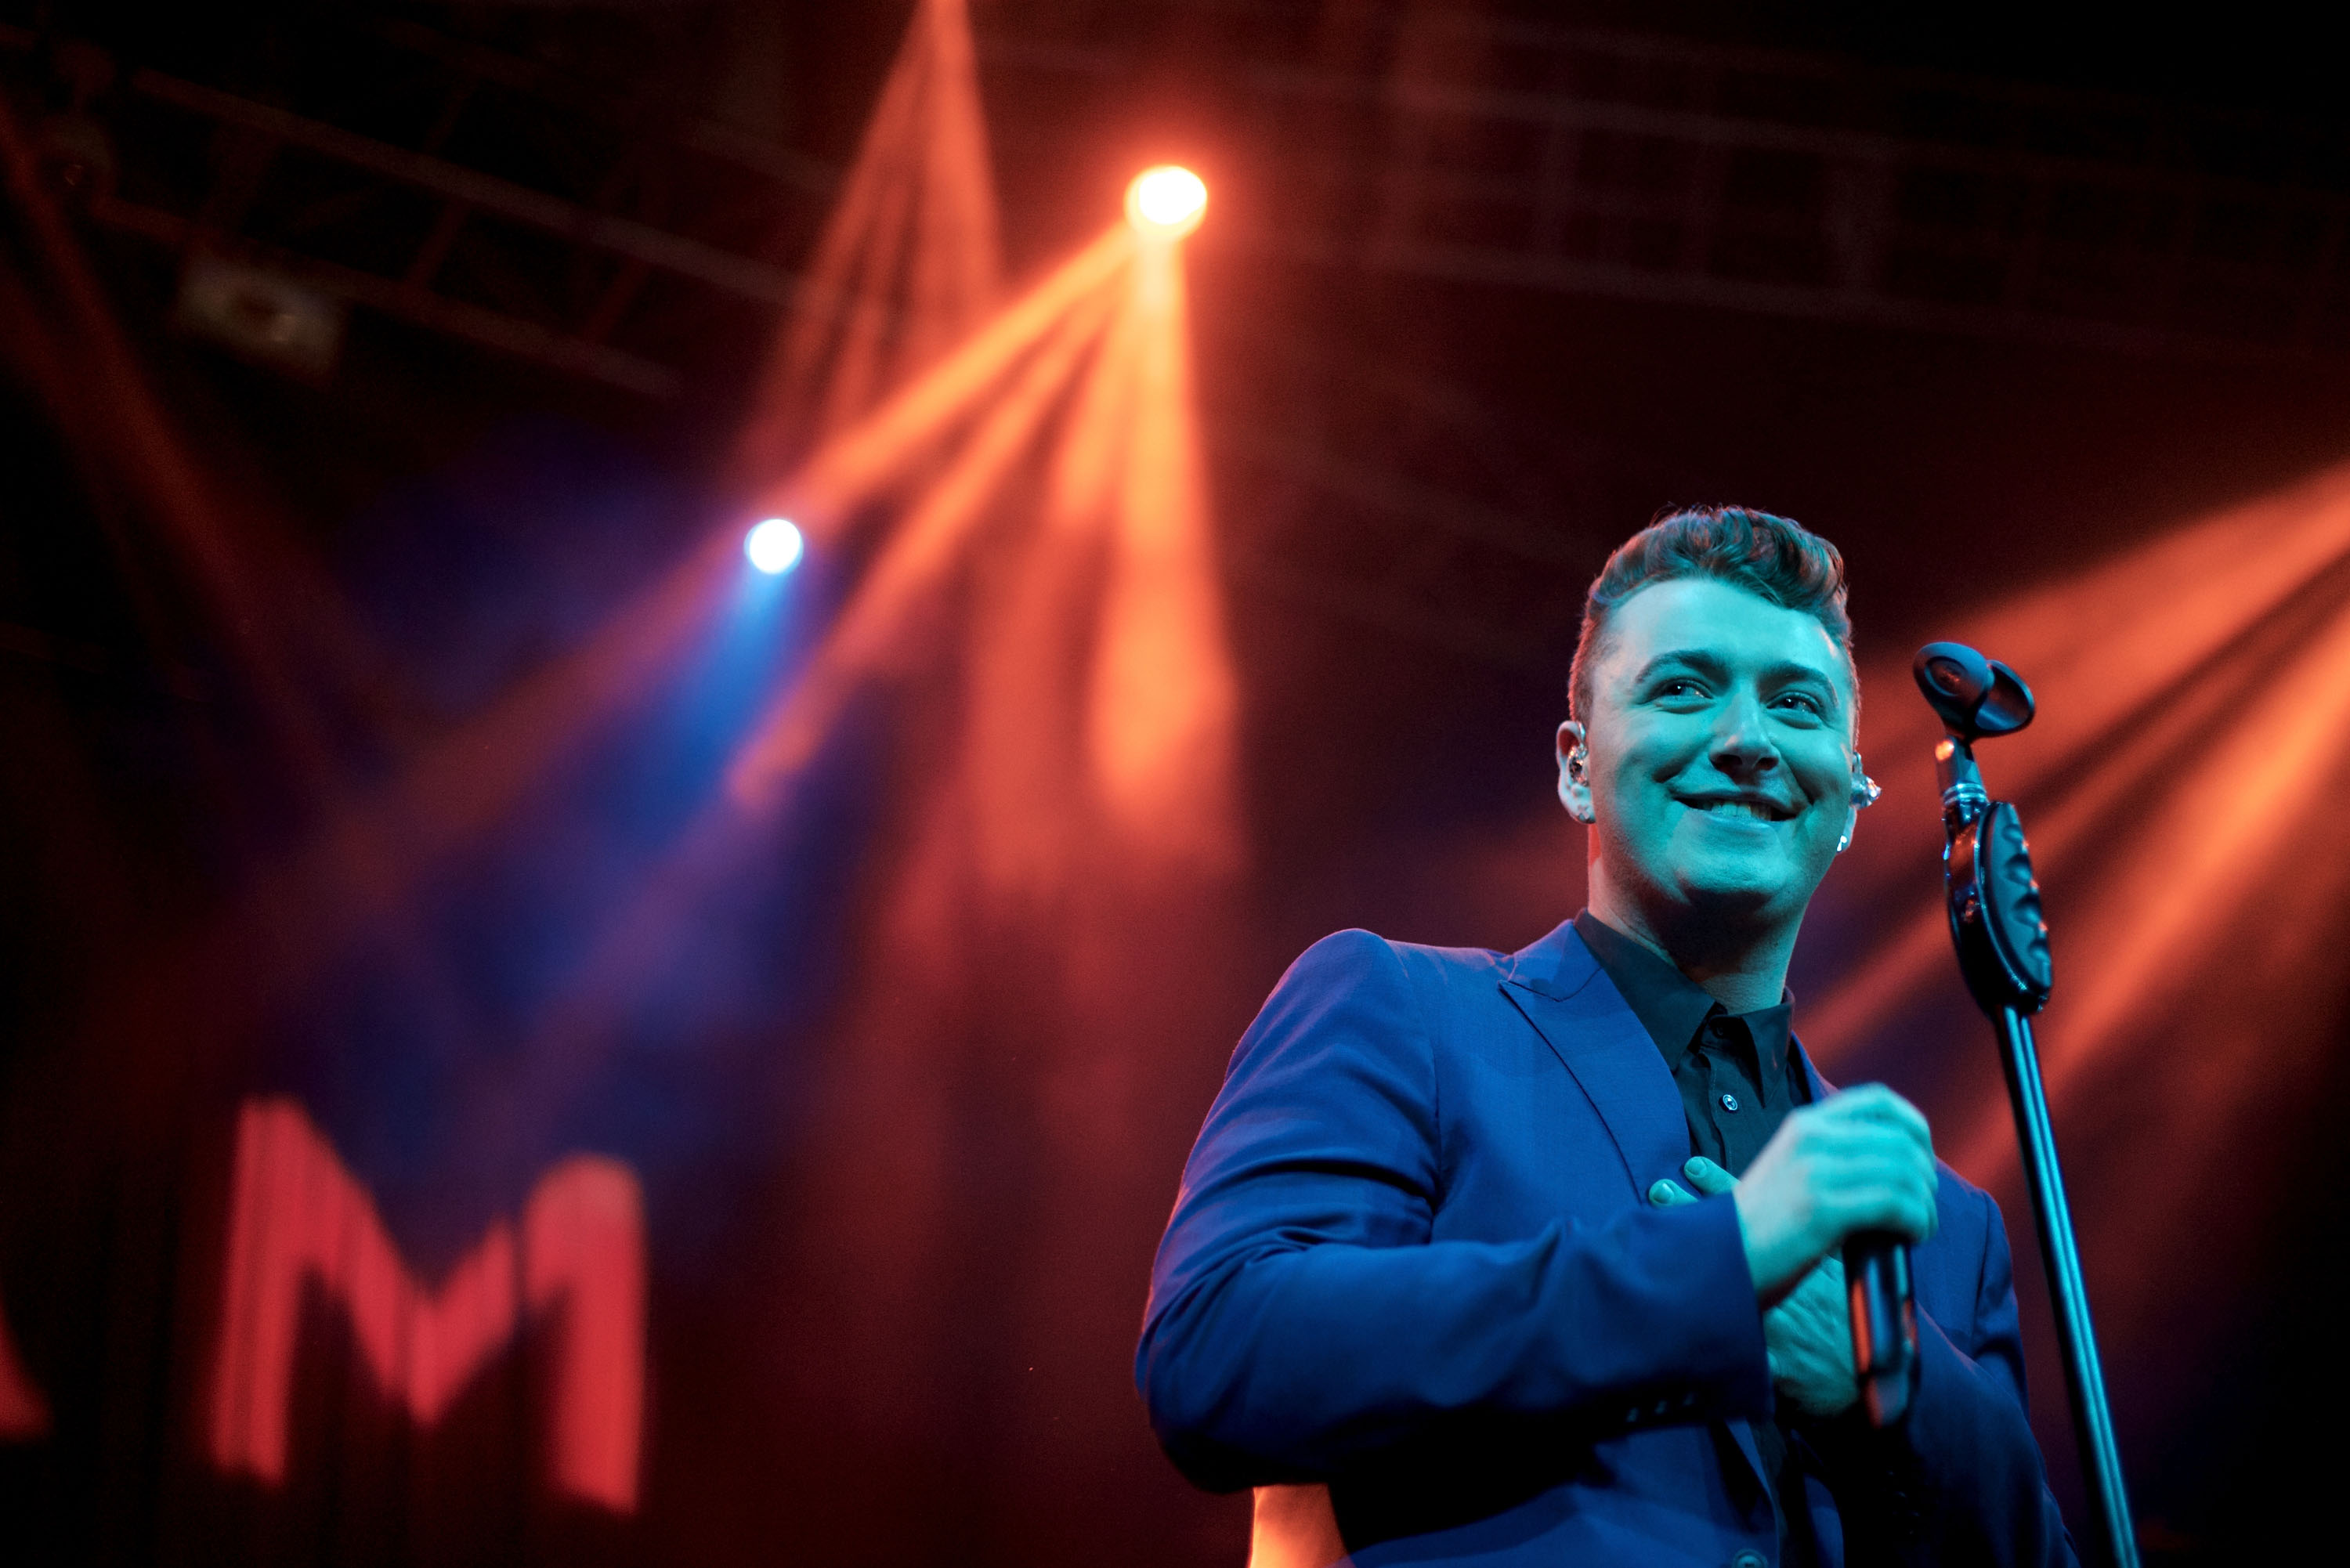 Sam Smith performs at a Los Angeles concert